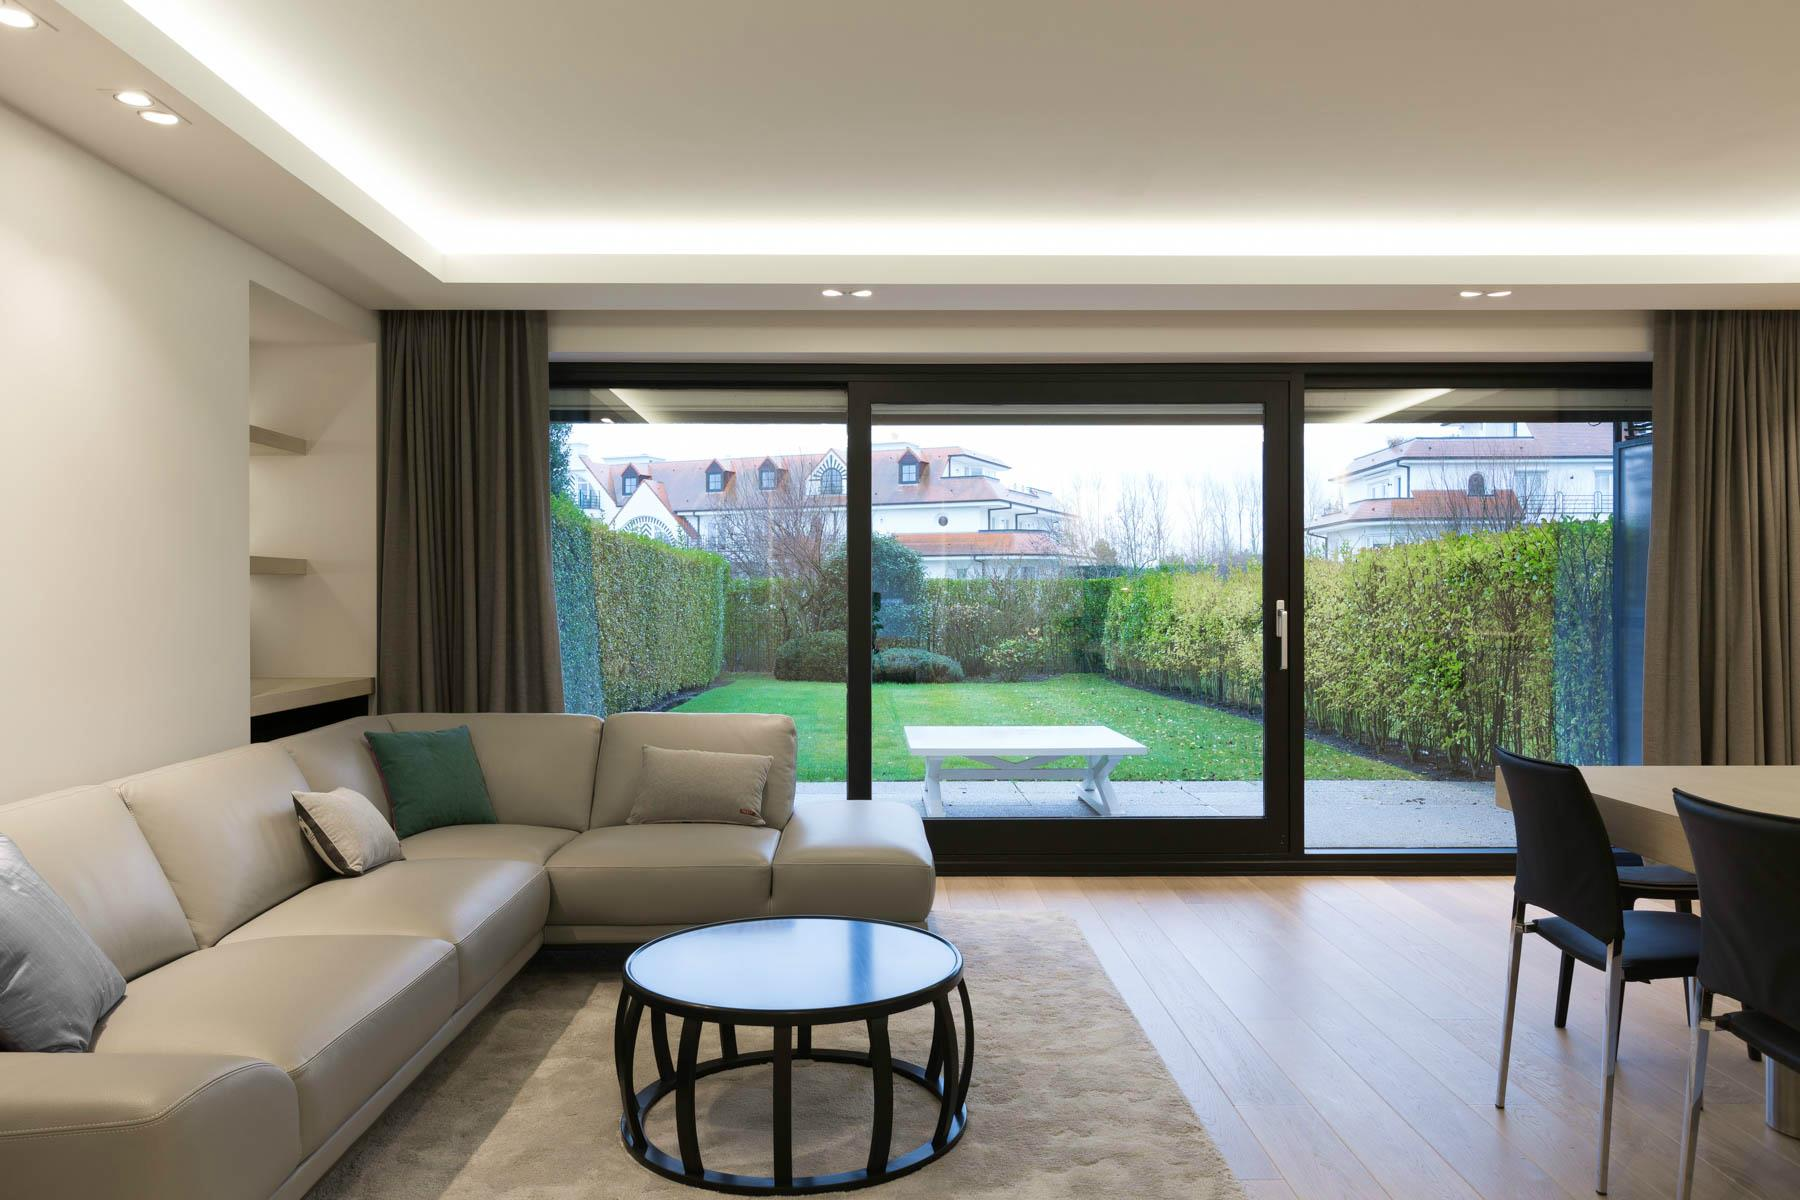 ARCHITECTE RENOVATION, RENOVATION INTERIEURE APPARTEMENT KNOKKE